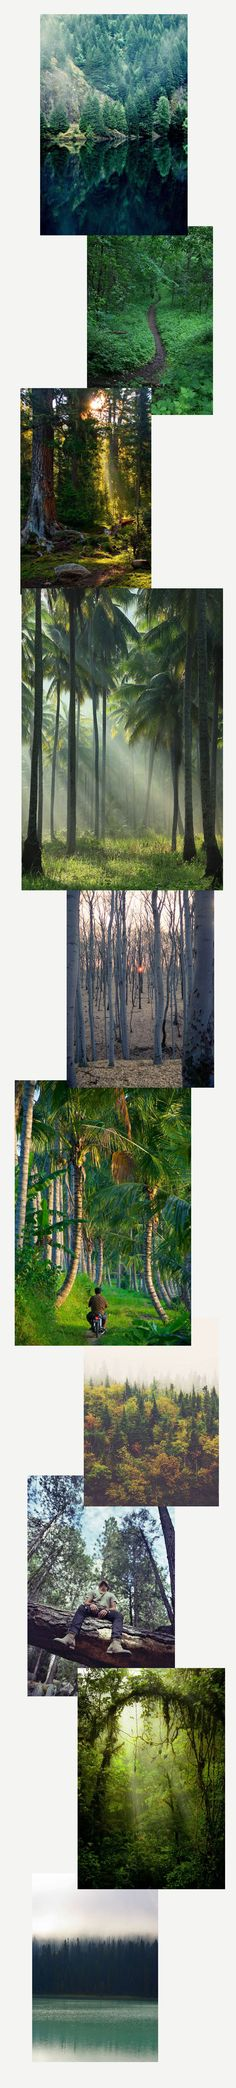 Travel Daydreaming: Lost in the Forest by The Wanderlove Collective Zine, Travel Inspiration, City Photo, Landscapes, Collage, Lost, Digital, Creative, Paisajes